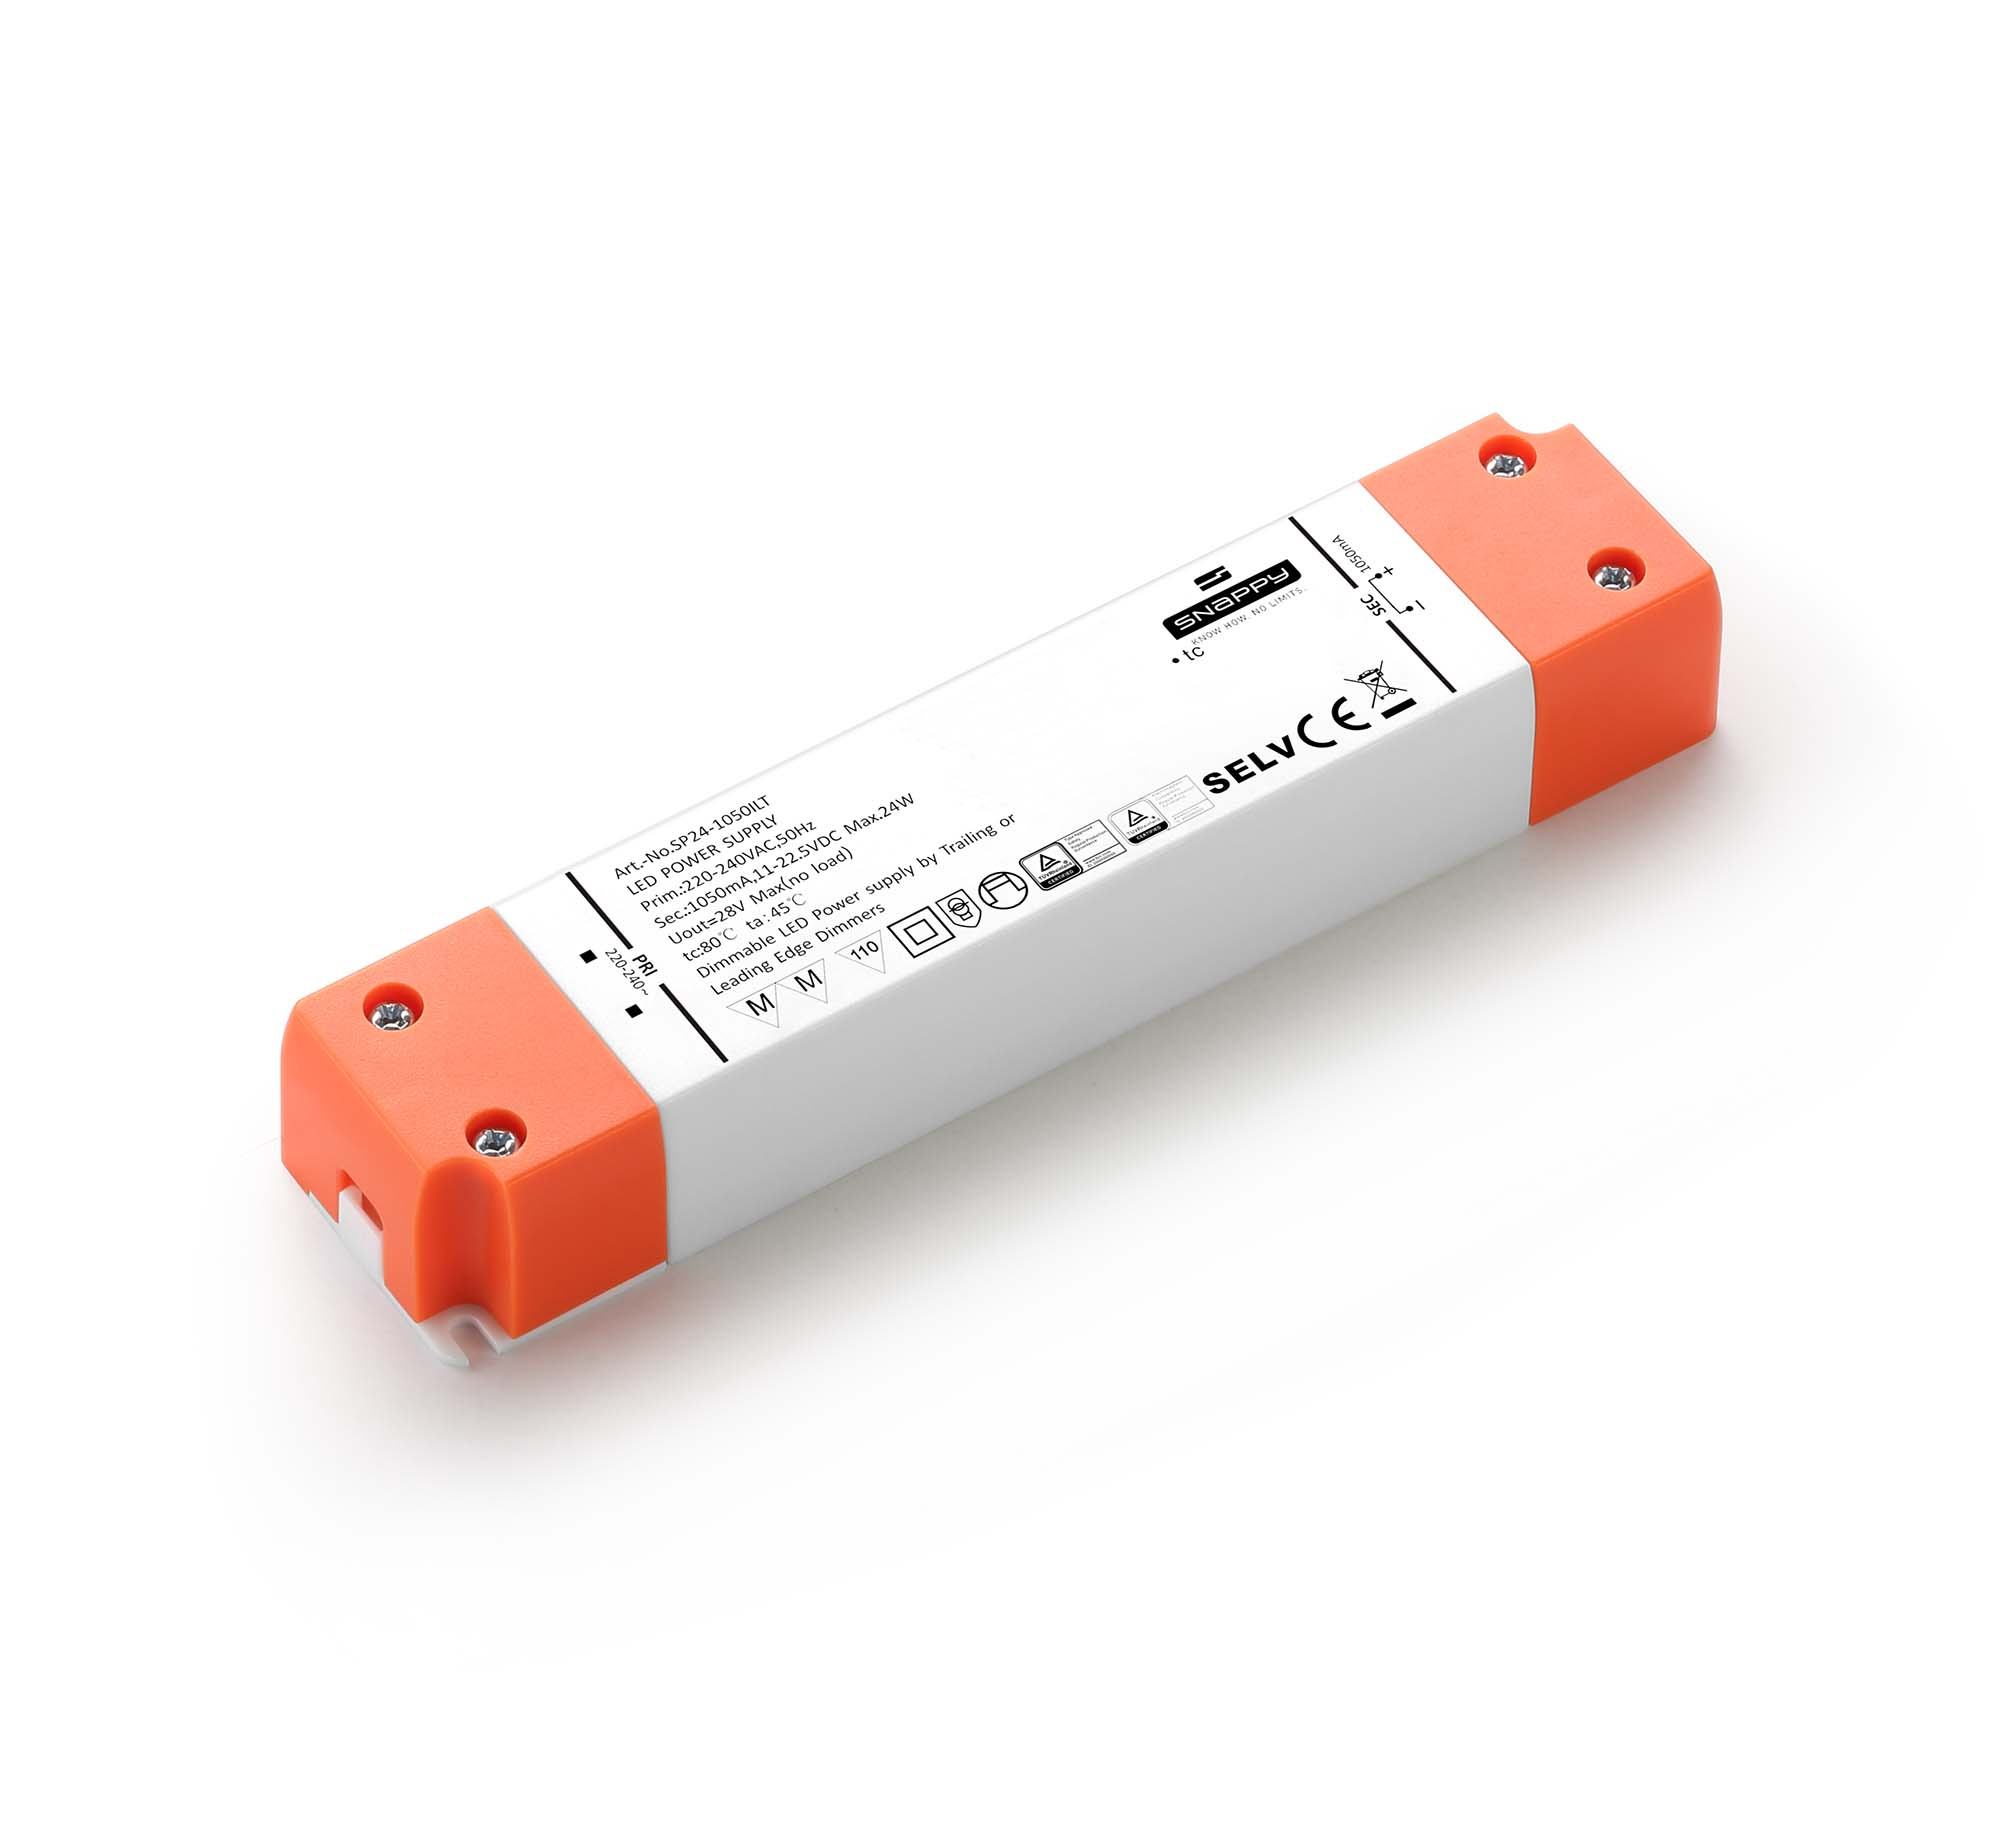 SP24-ILT  Input198-264VAC 24W 350/500/700/1050mA IP20 constant current Triac dimmable LED Driver LED Power supply